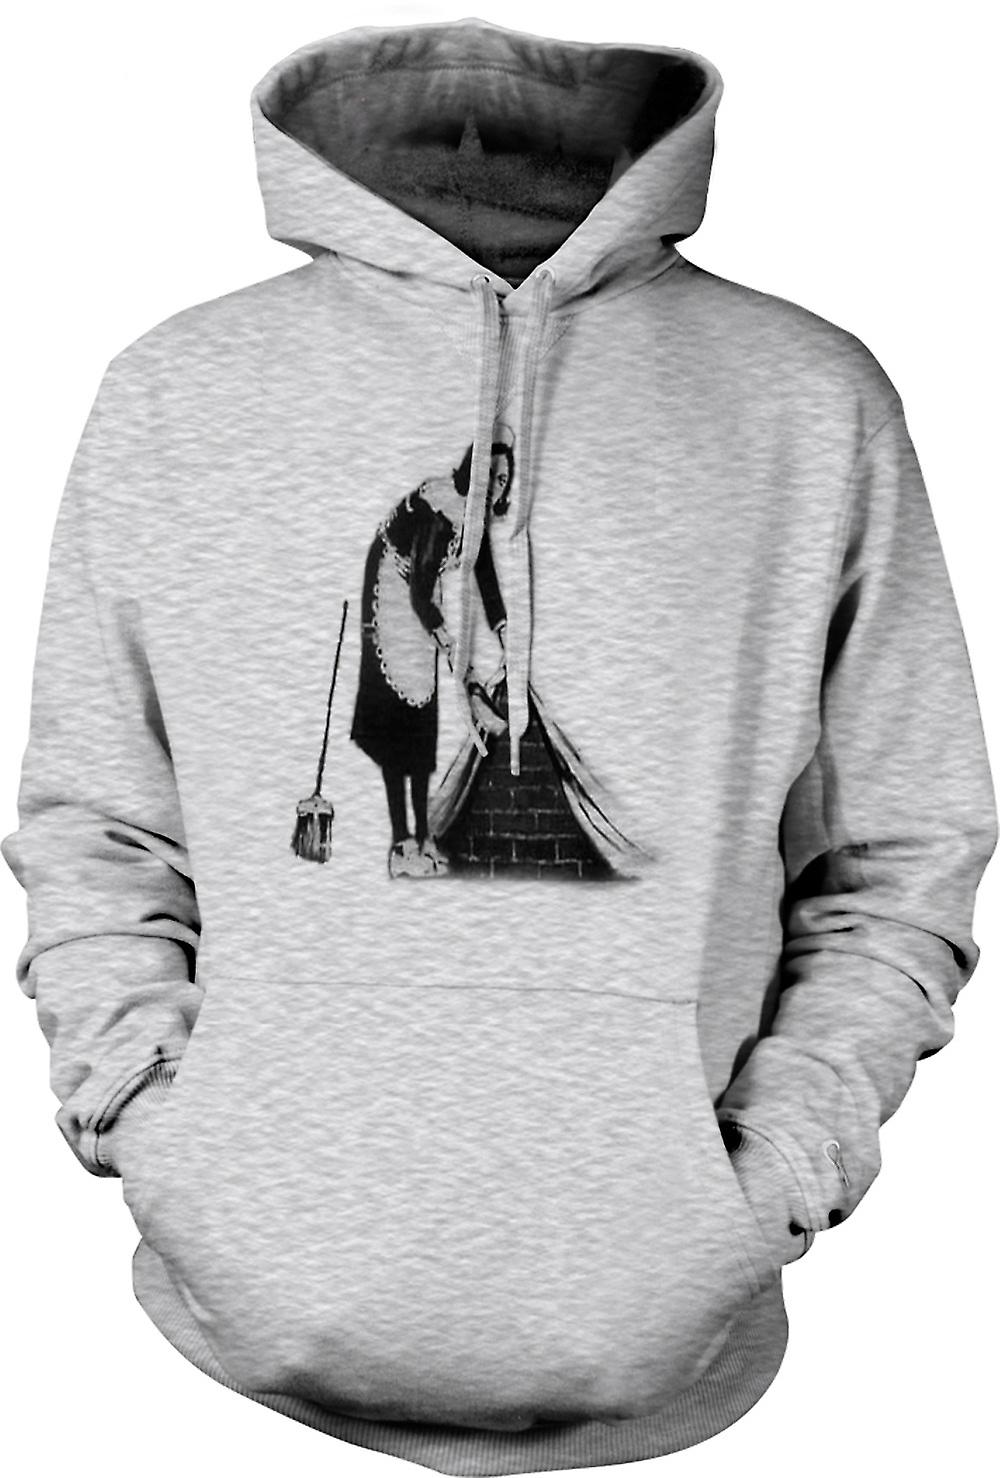 Mens Hoodie - Graffiti Banksy Art - Maid